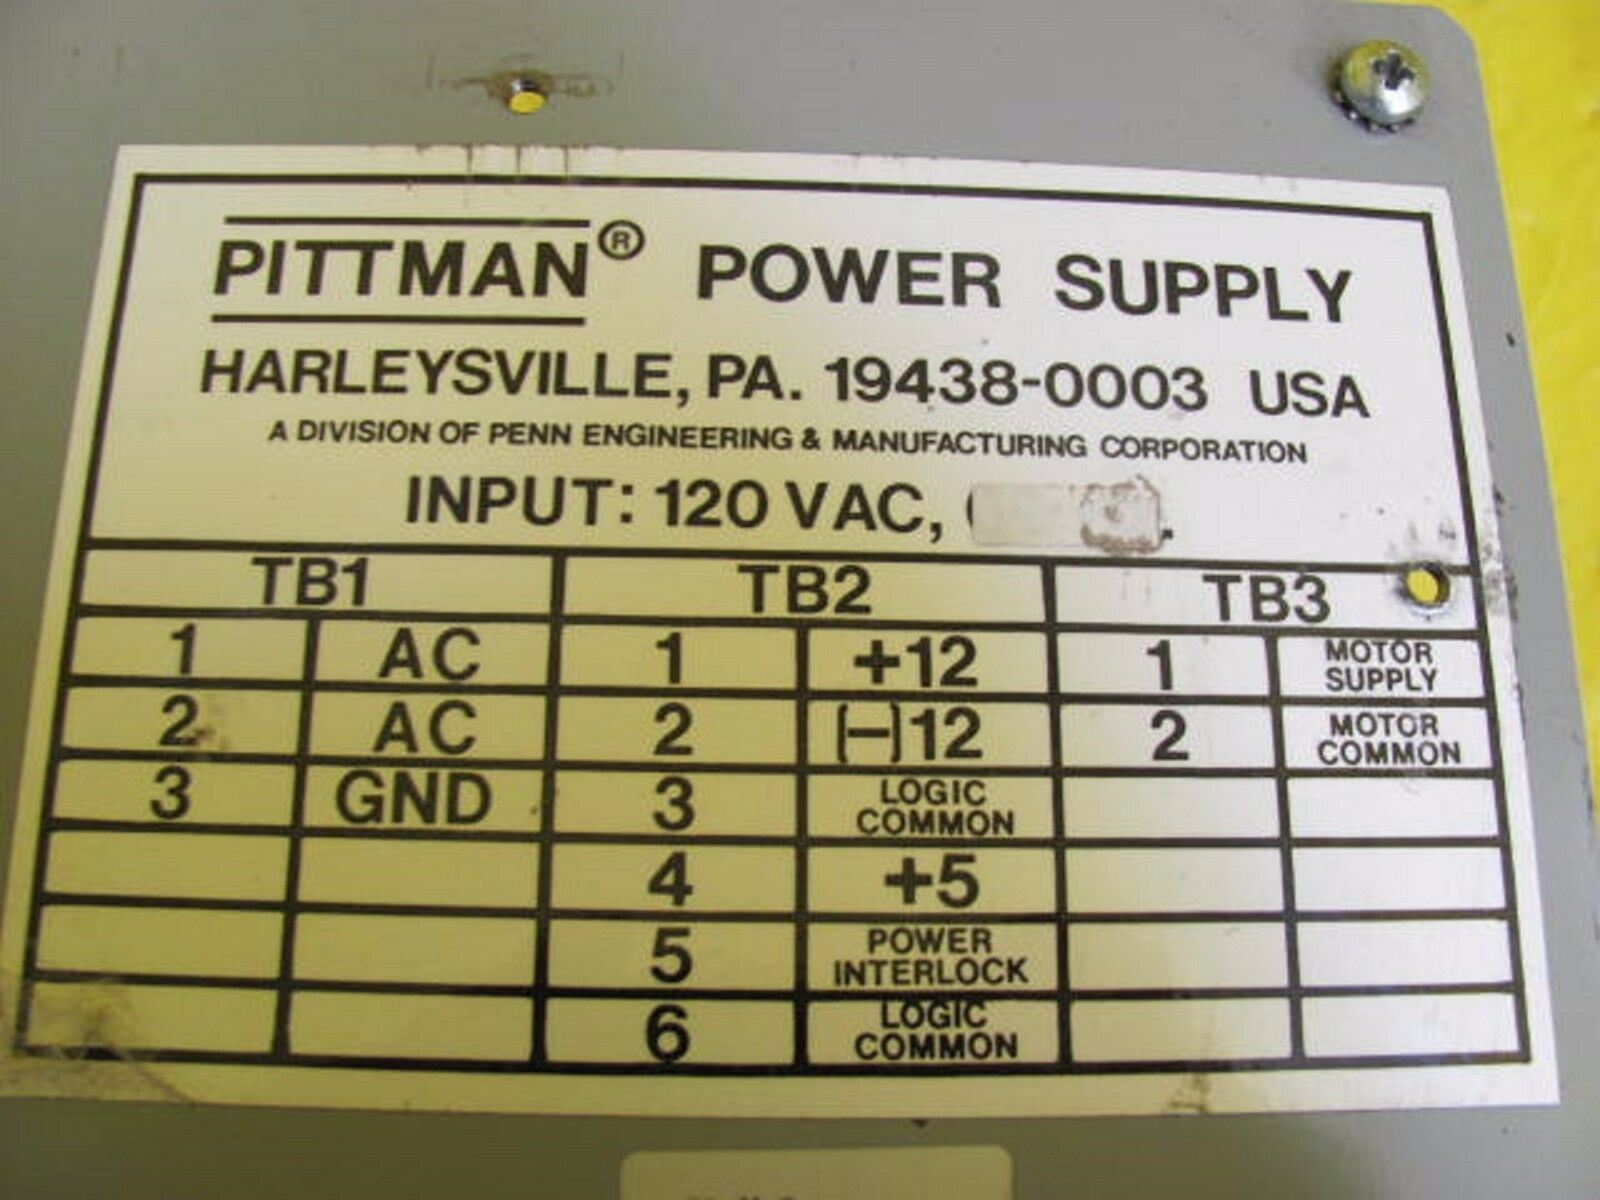 Pittman EMR-100k Power Supply Assembly CL-4-8 Used Working